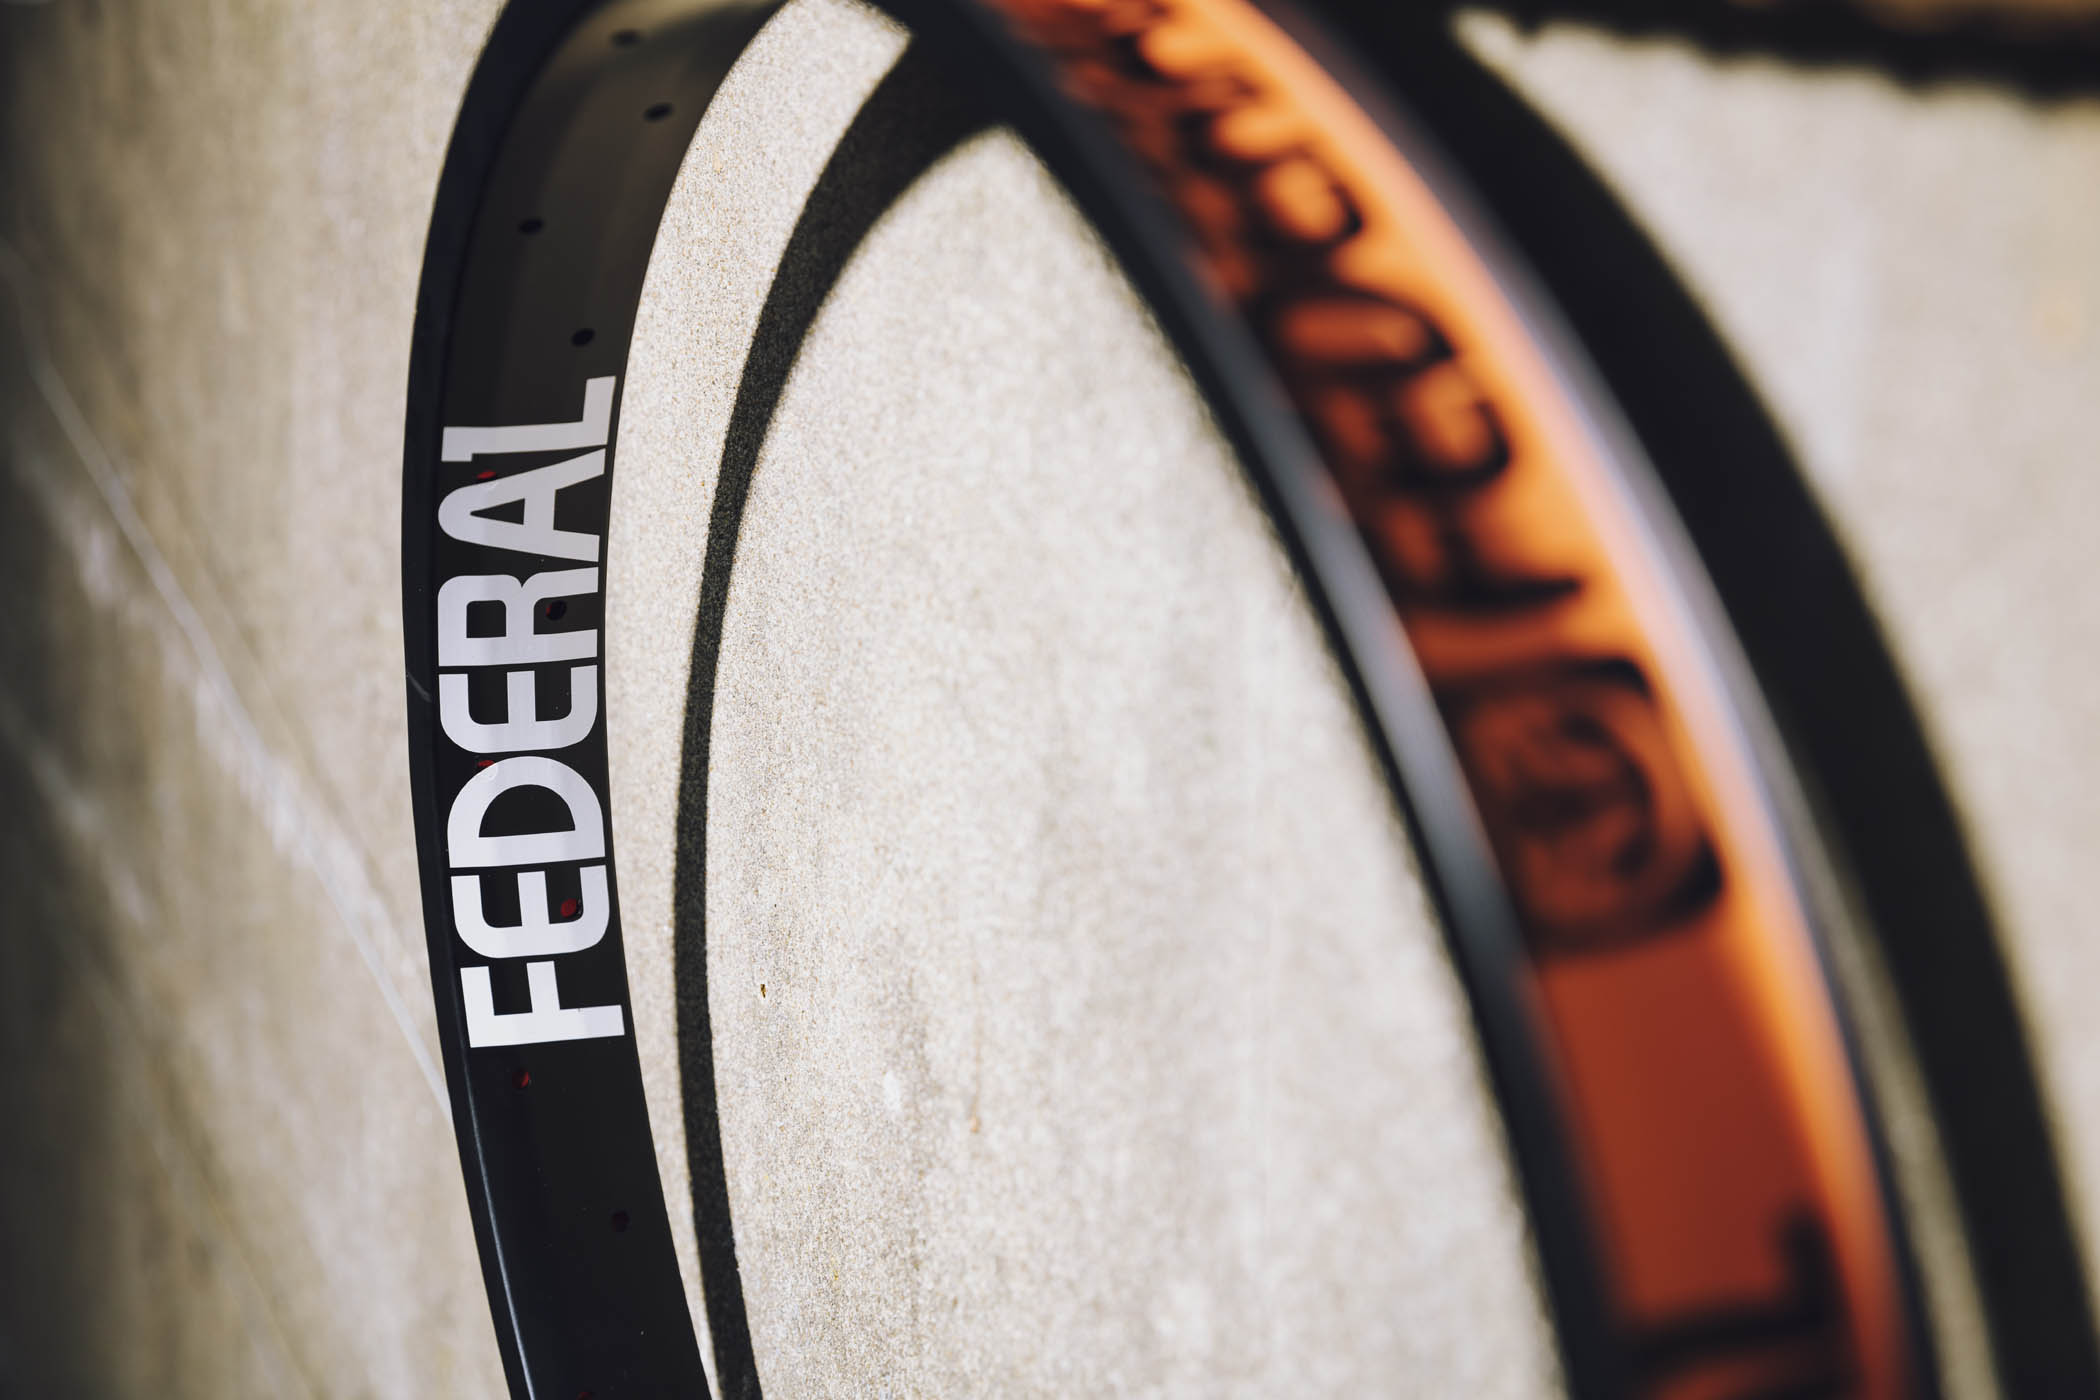 FEDERAL STANCE XL RIM – REVIEW